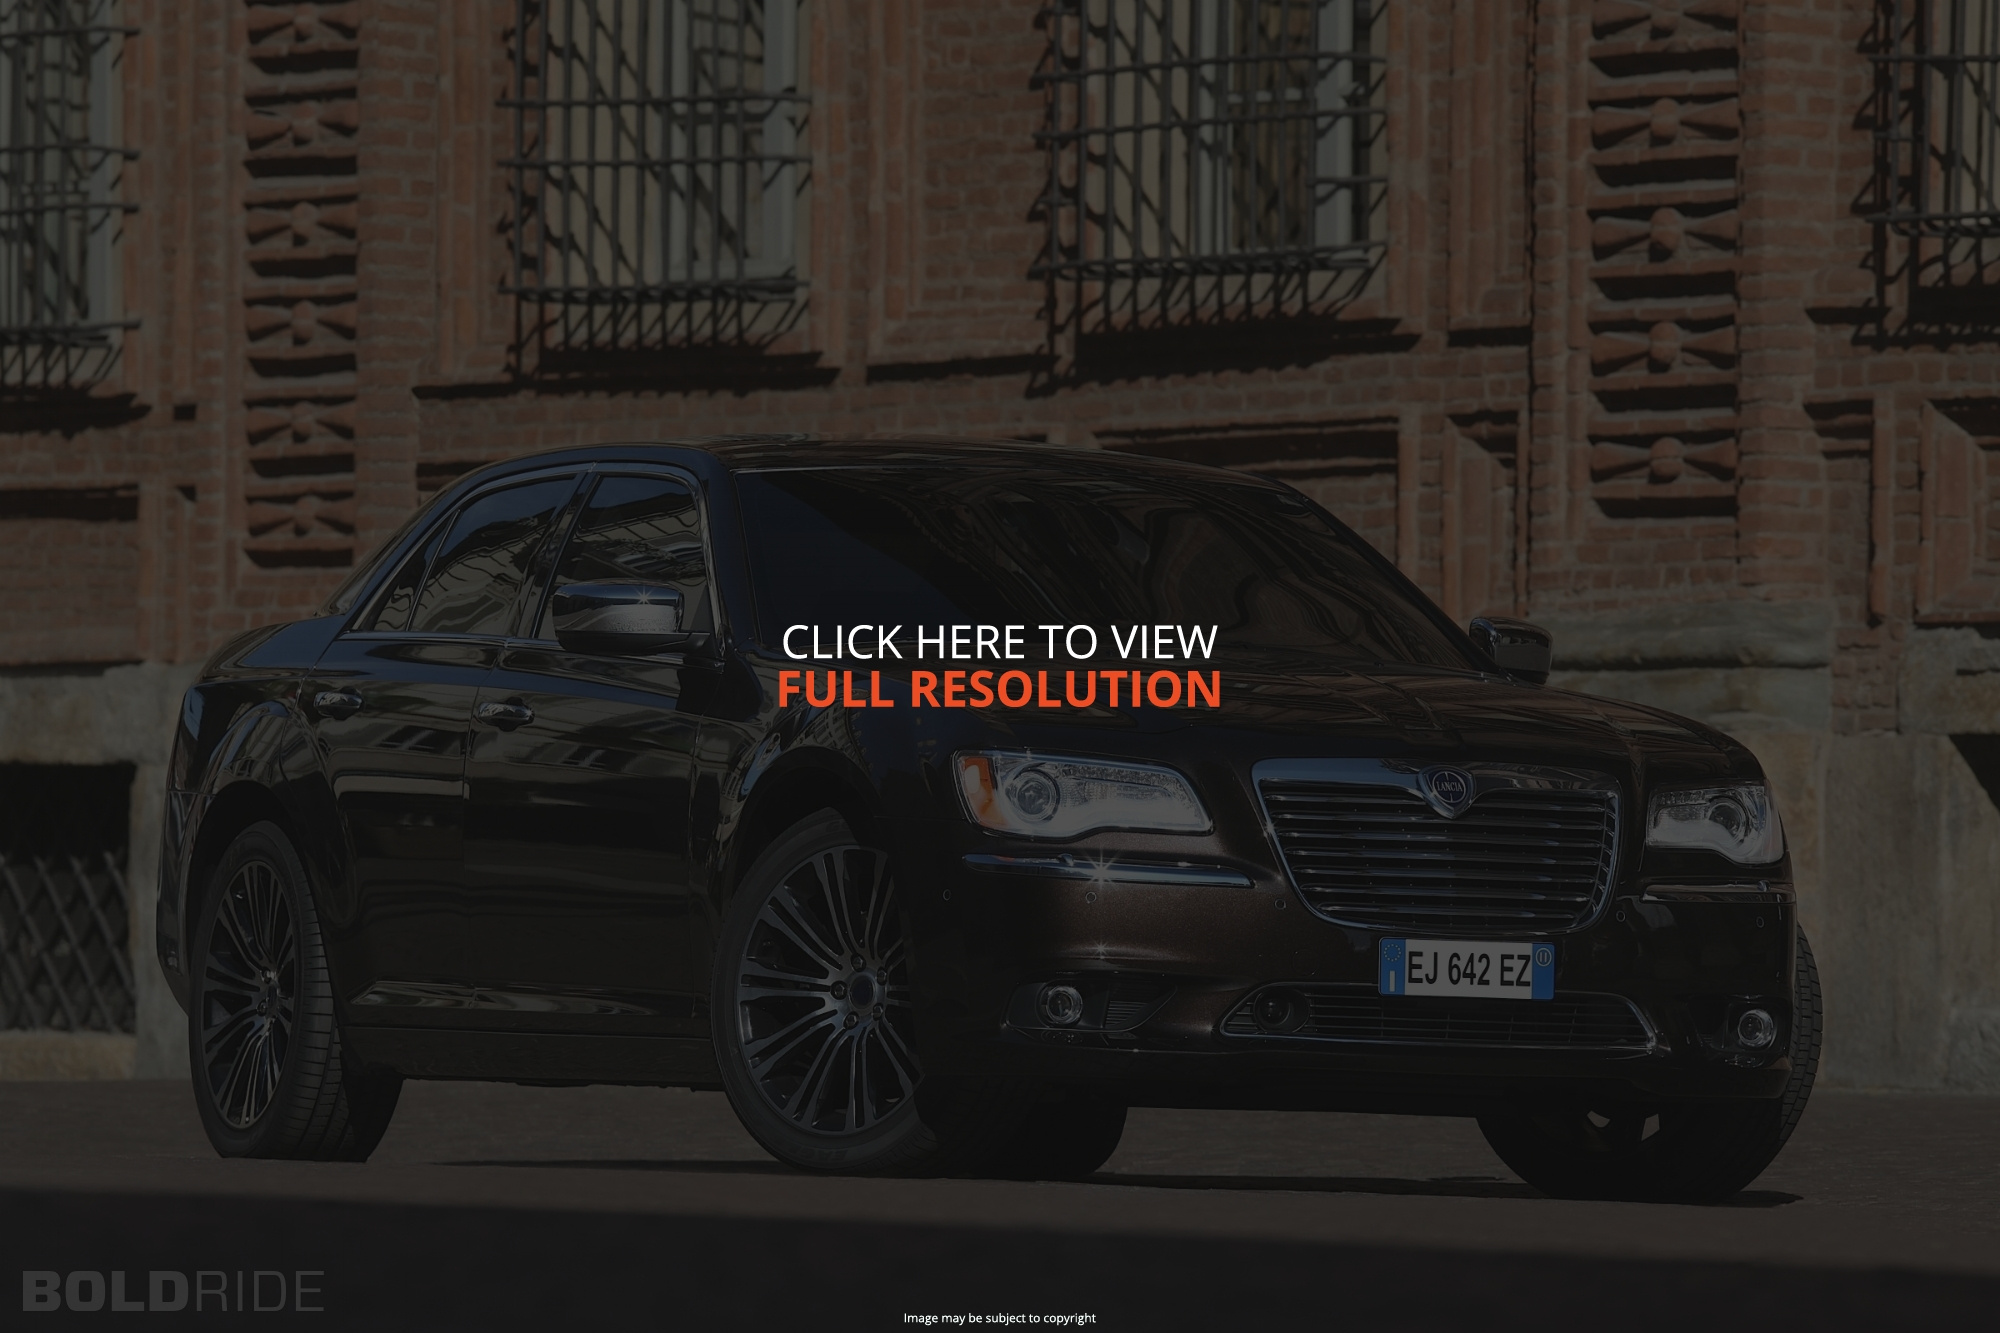 Pictures of lancia thema (lx) 2012 #9